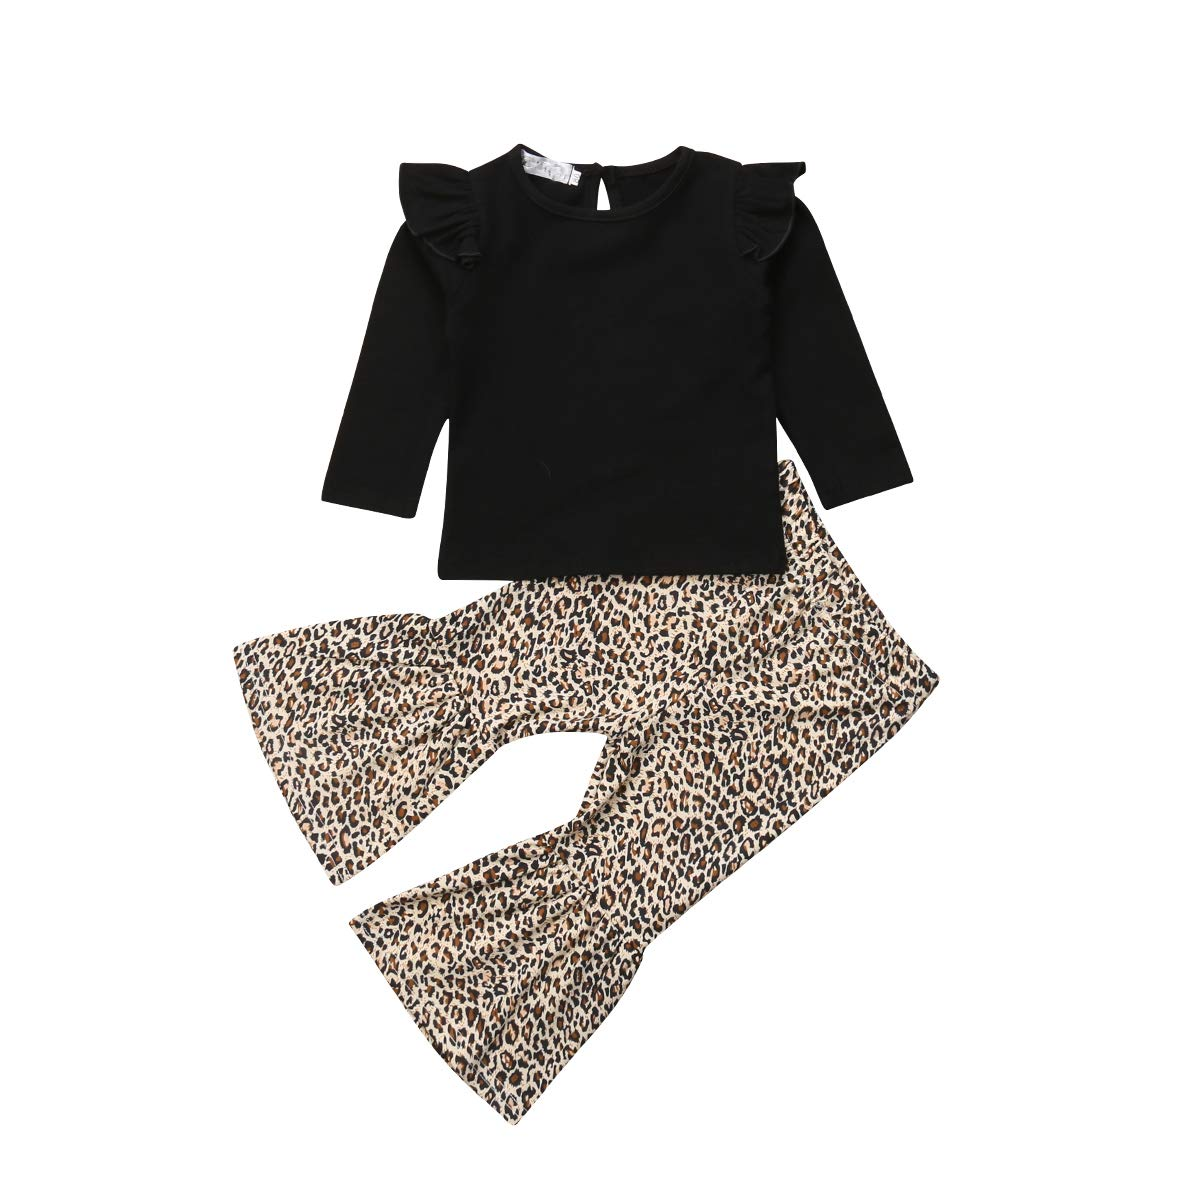 Toddler Baby Girl Pant Sets Outfits, Long Sleeve Tops T Shirts + Leopard Flared Wide Leg Pants (4-5 Years, Black)